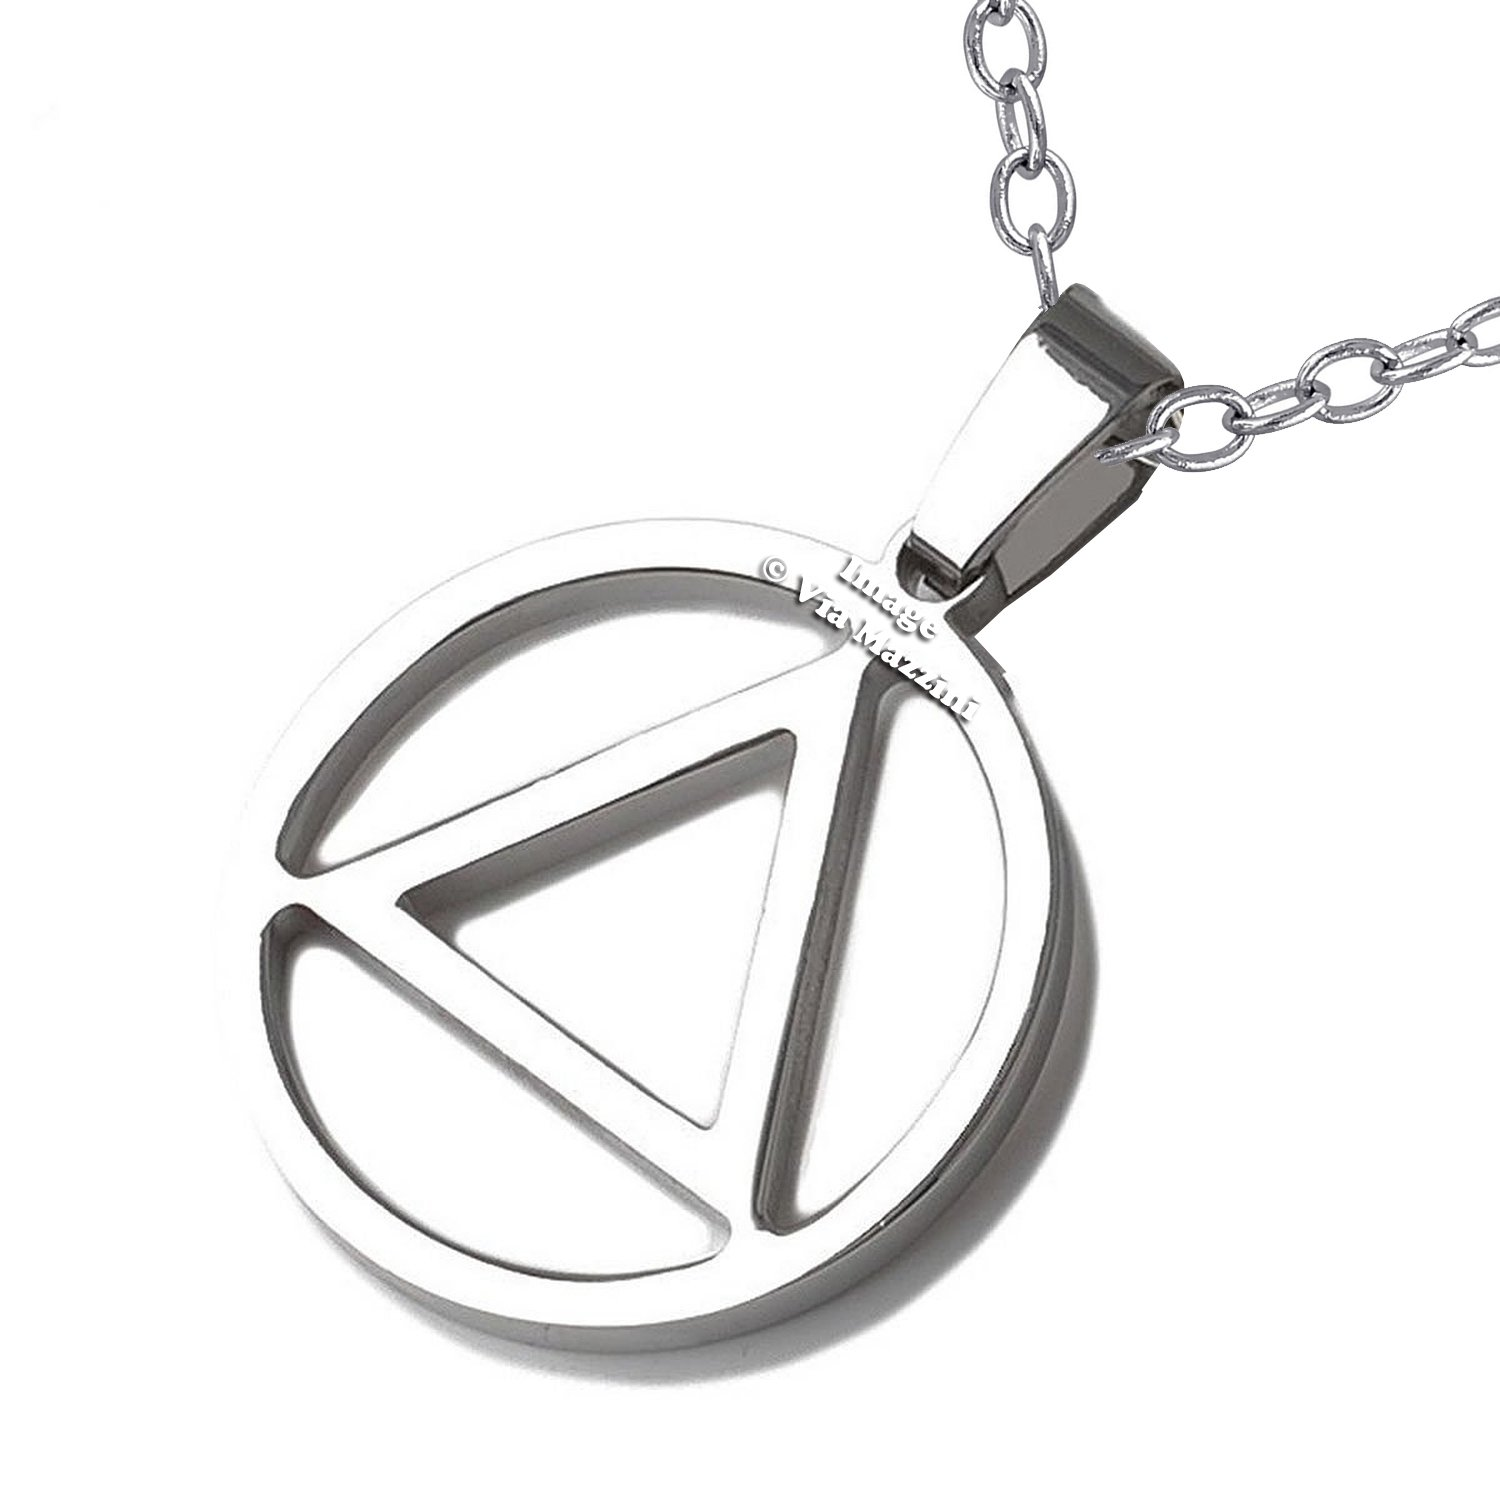 com loading triangular pendant edgy zoom kuberbox